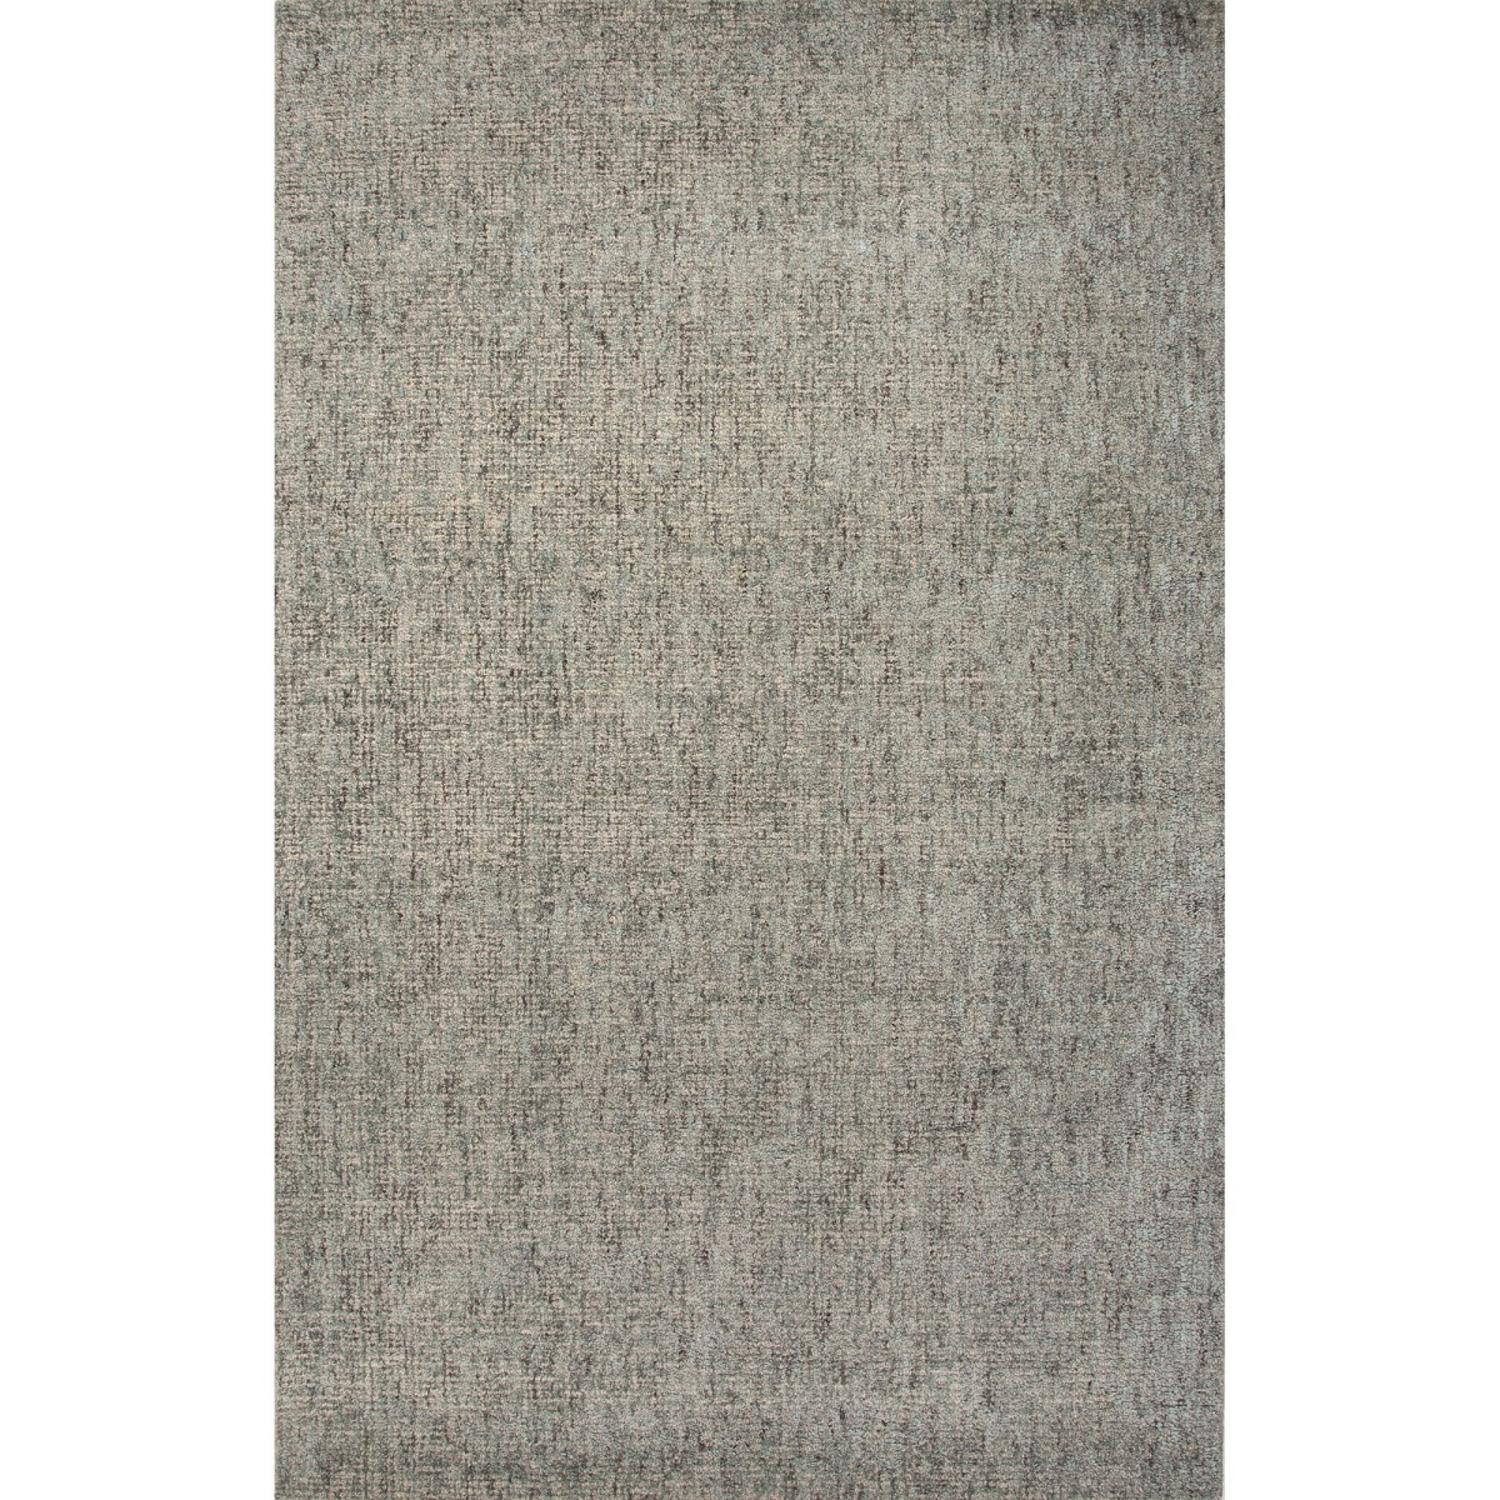 8' x 10' Light Gray and Pale Blue Britta Plus Hand Tufted Wool and Art Silk Area Throw Rug